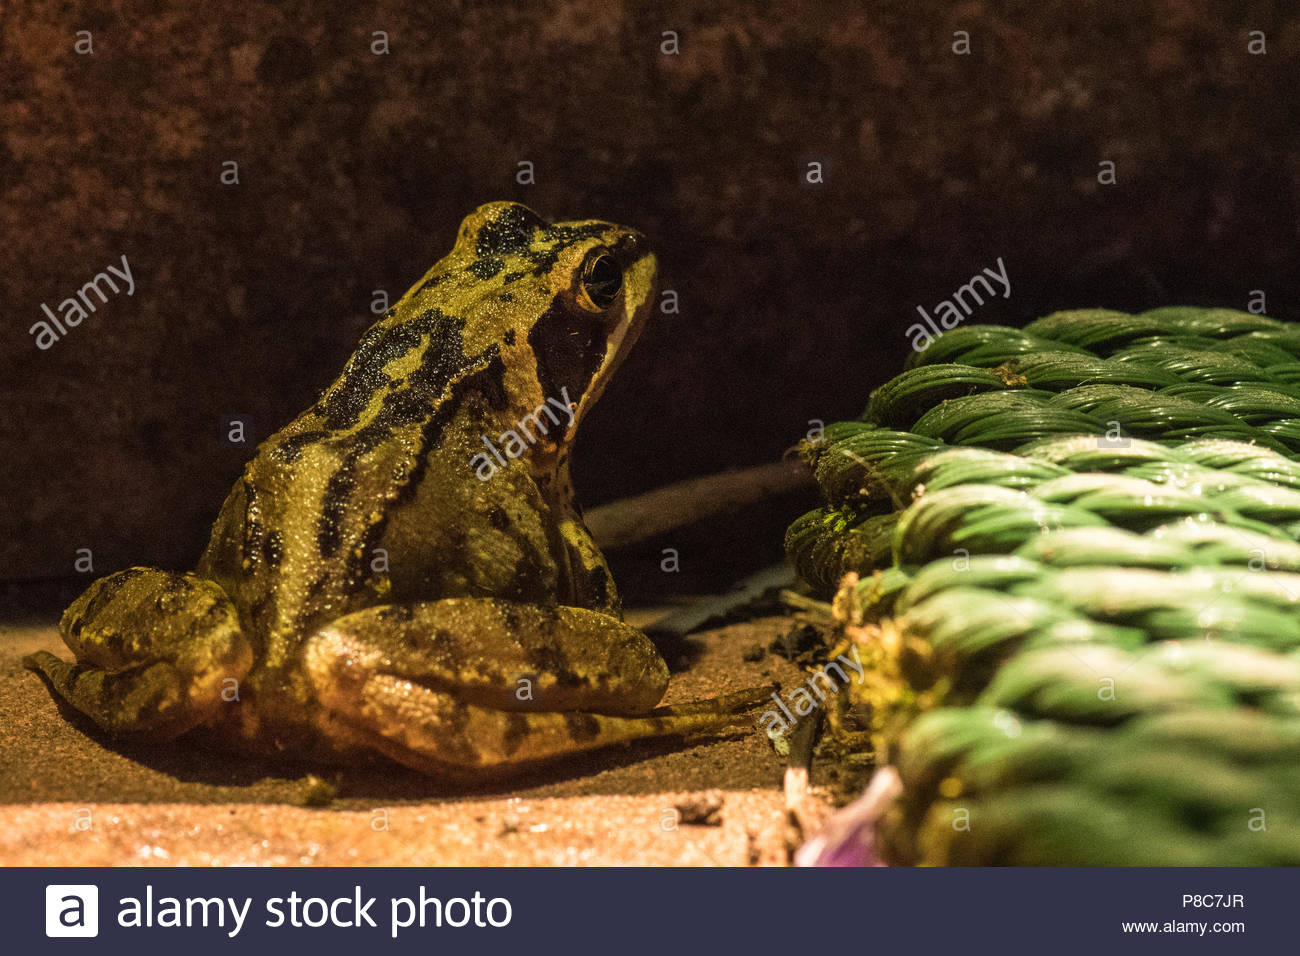 garden wildlife uk at night - a common frog (Rana temporaria' sitting outside house at night - Stock Image